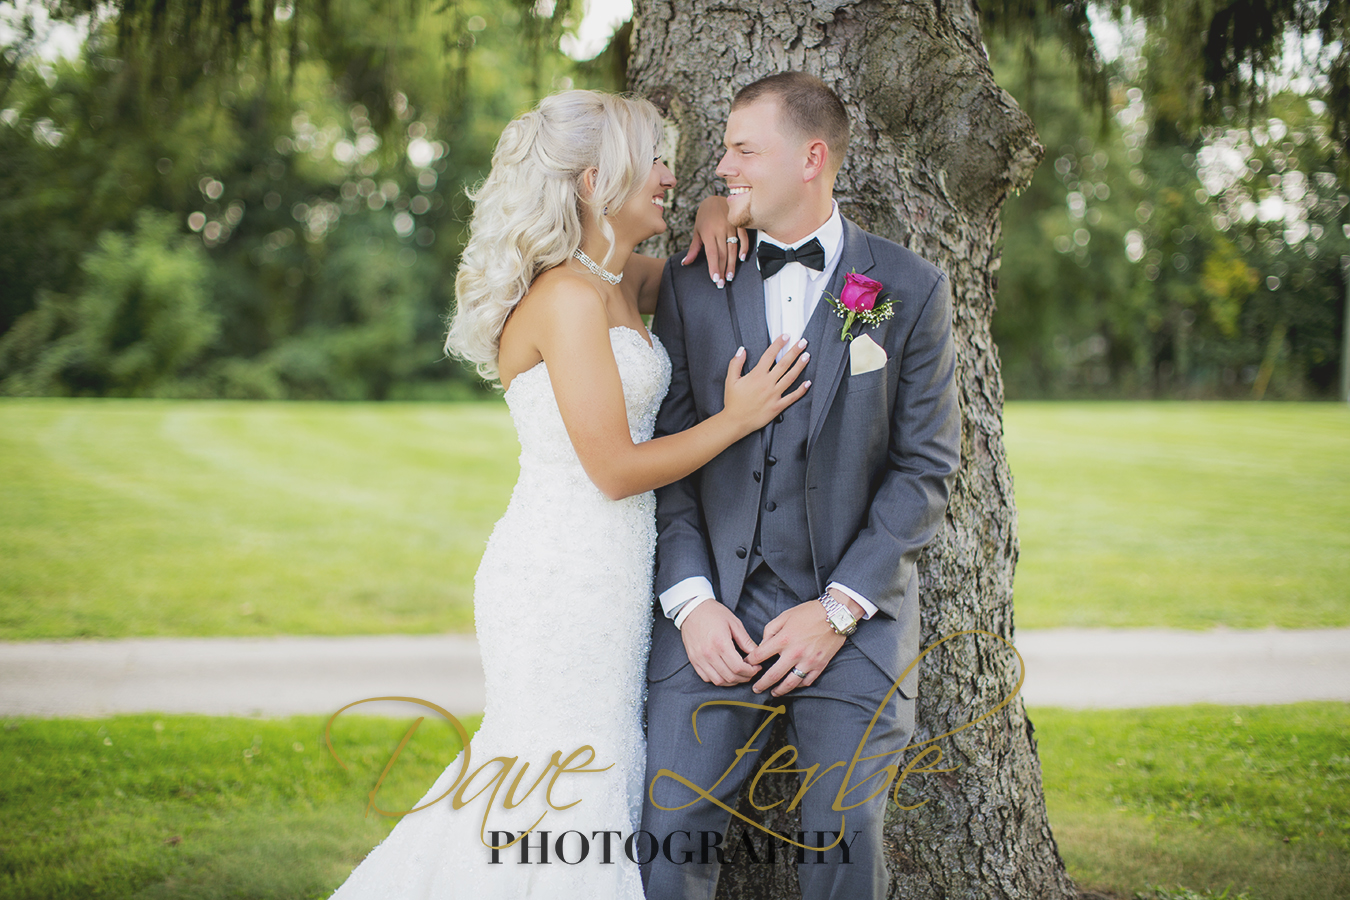 The Wedding of Elyse Branton & Cole Parkinson